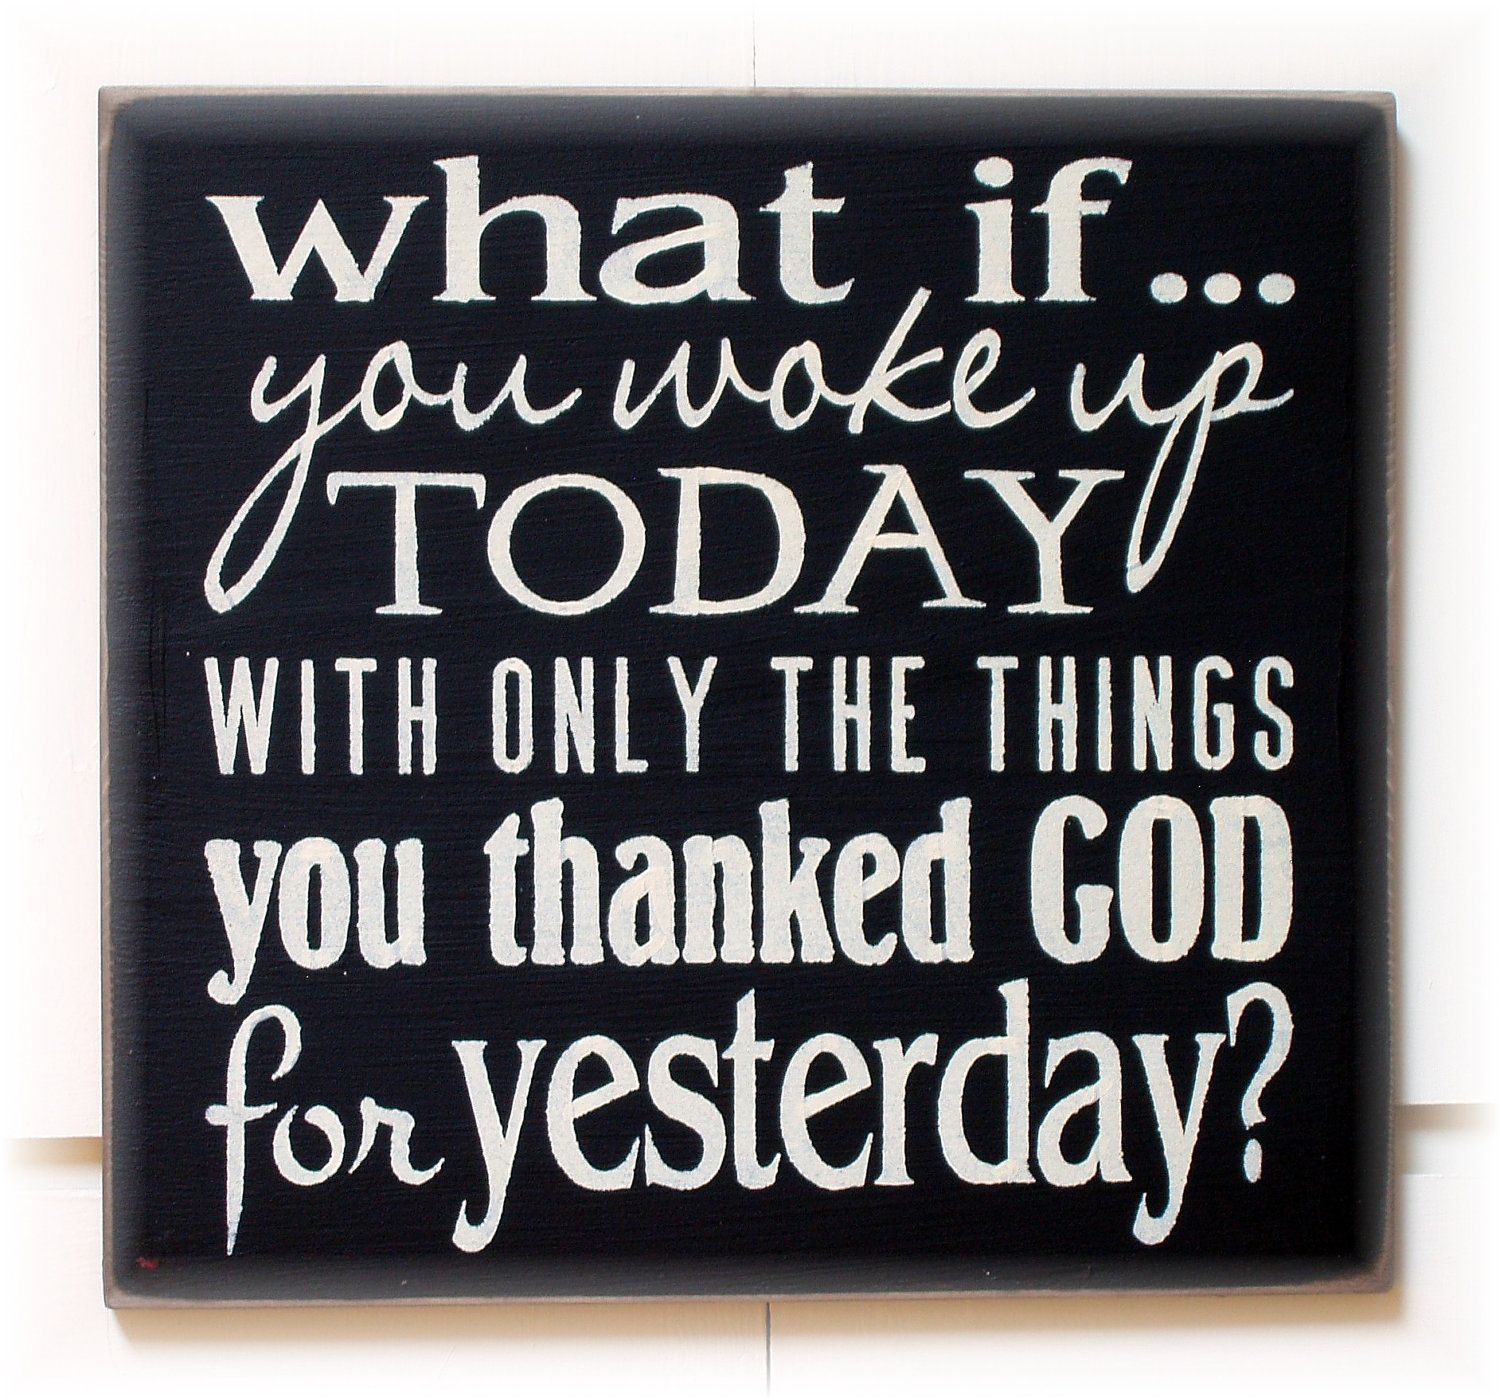 What if you woke up today with only the things you thanked God